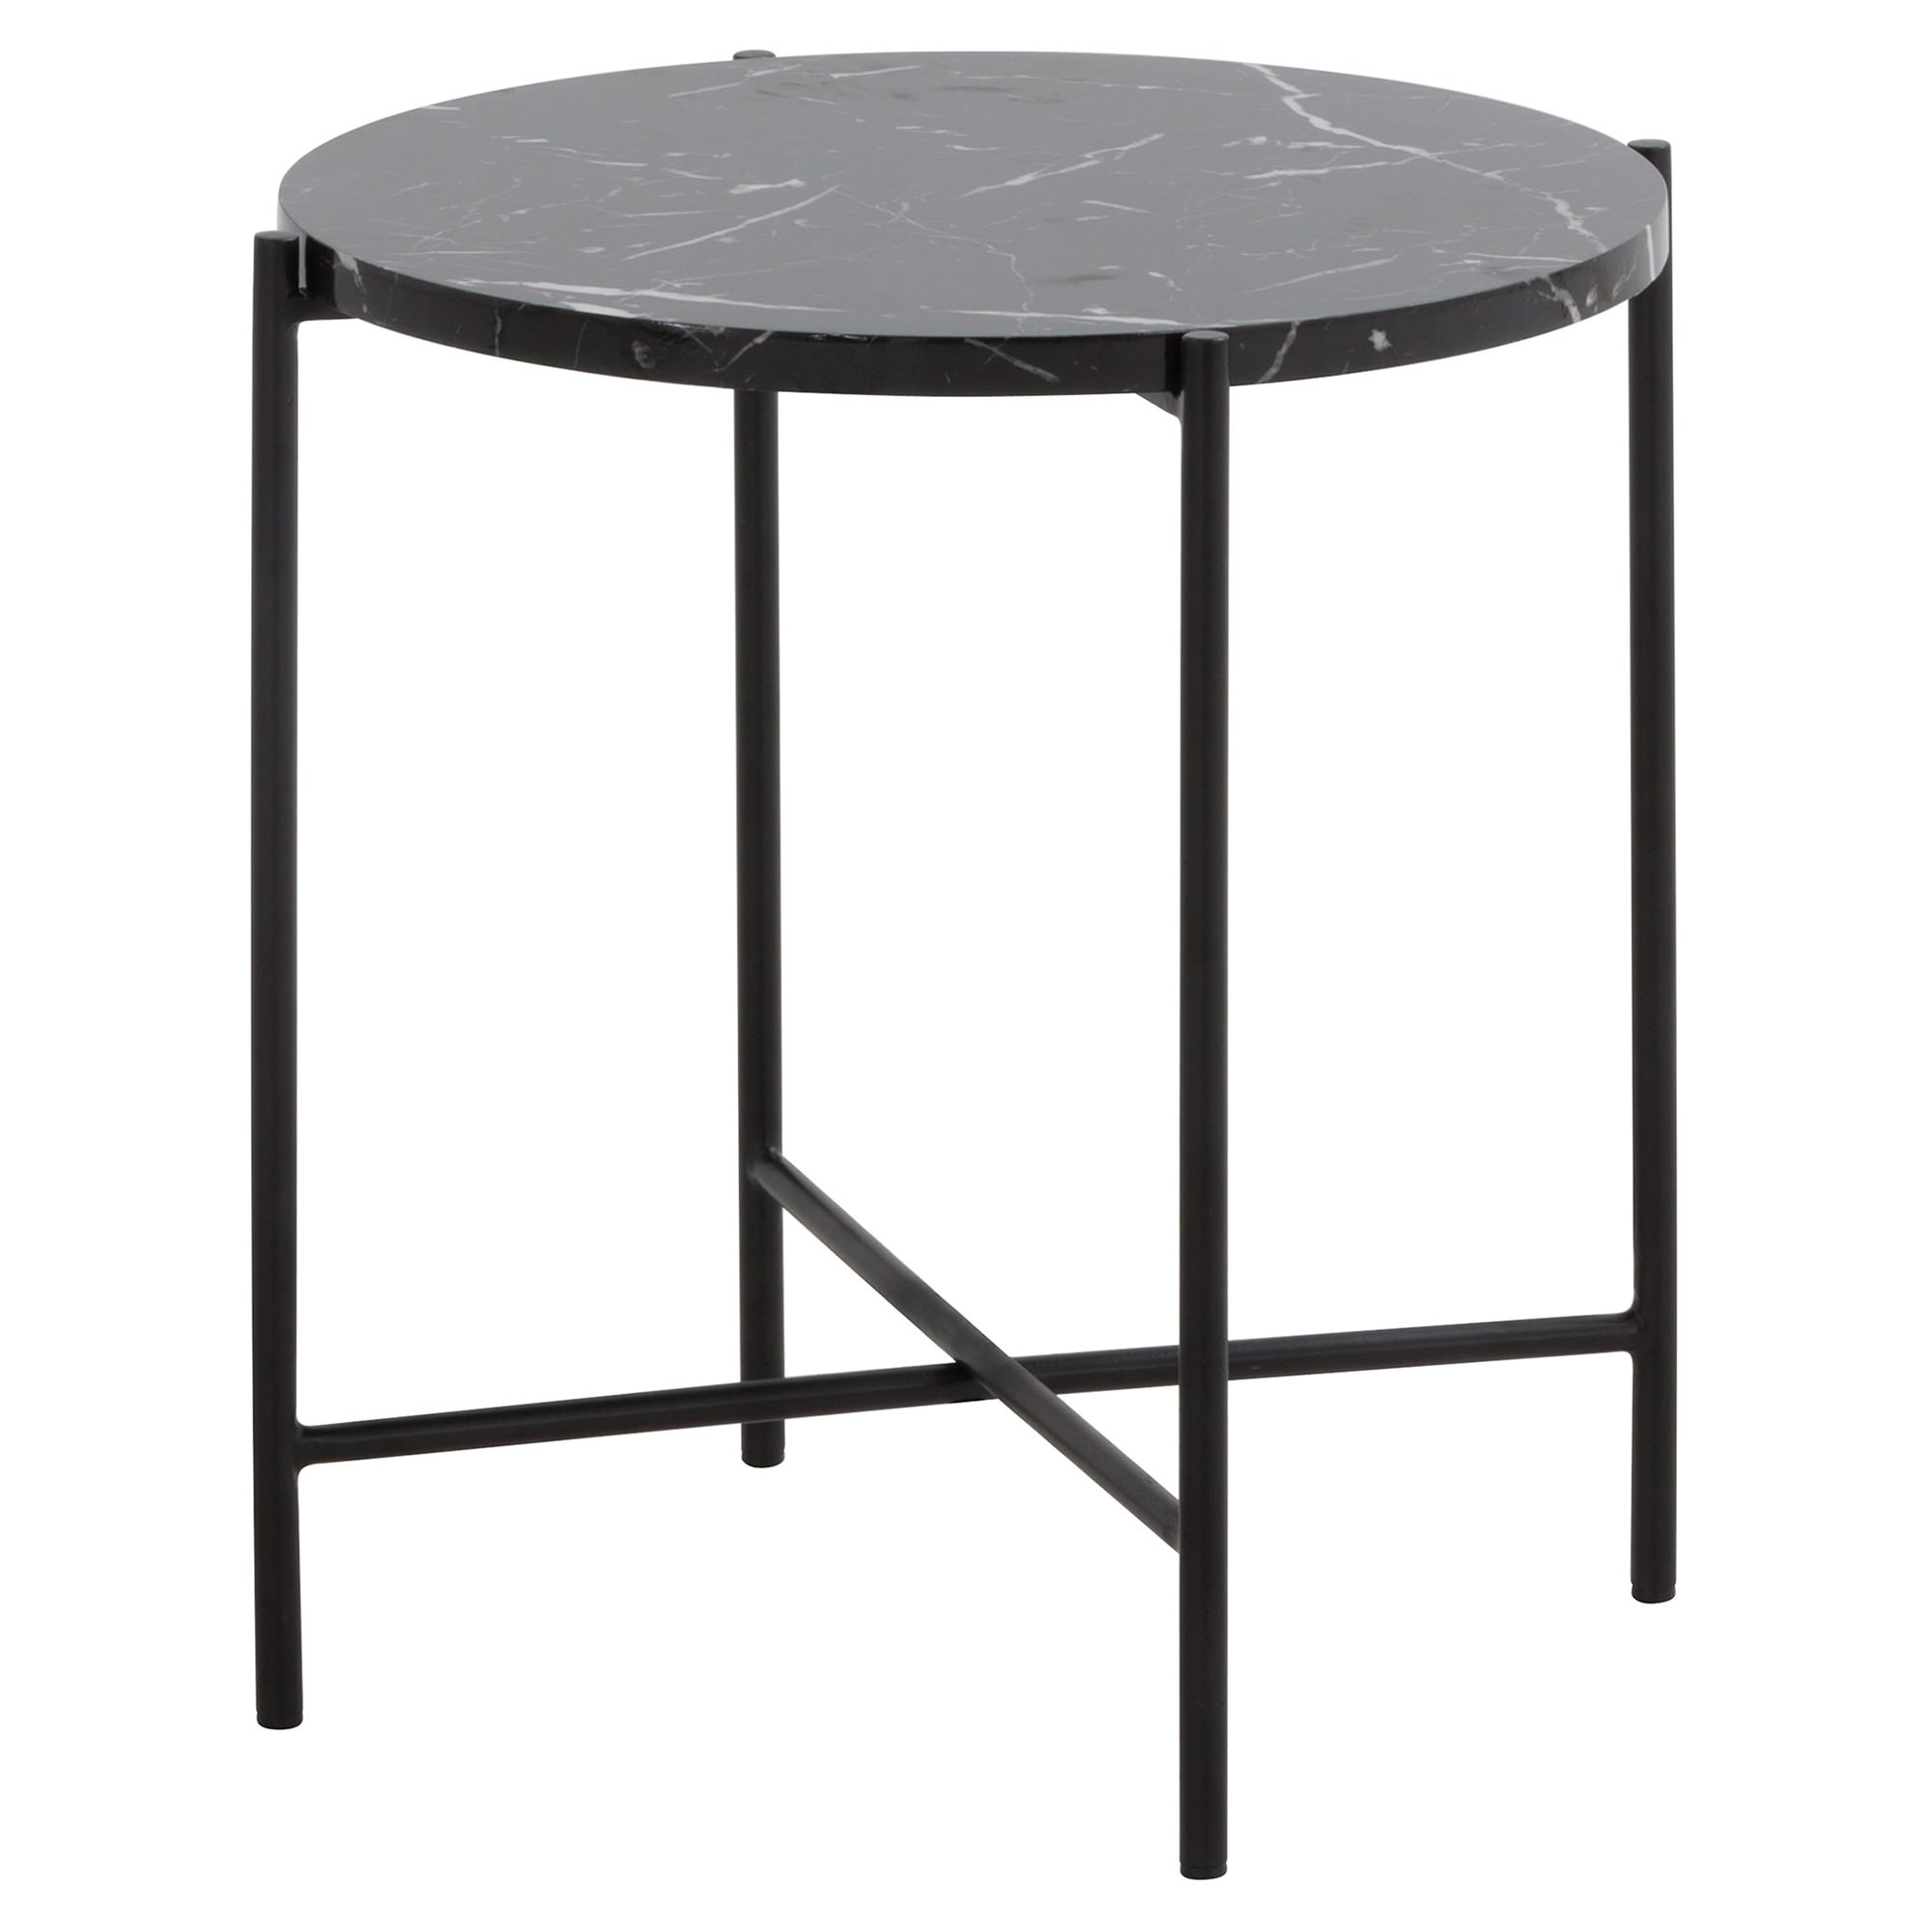 Jaden Round Side Table, Small